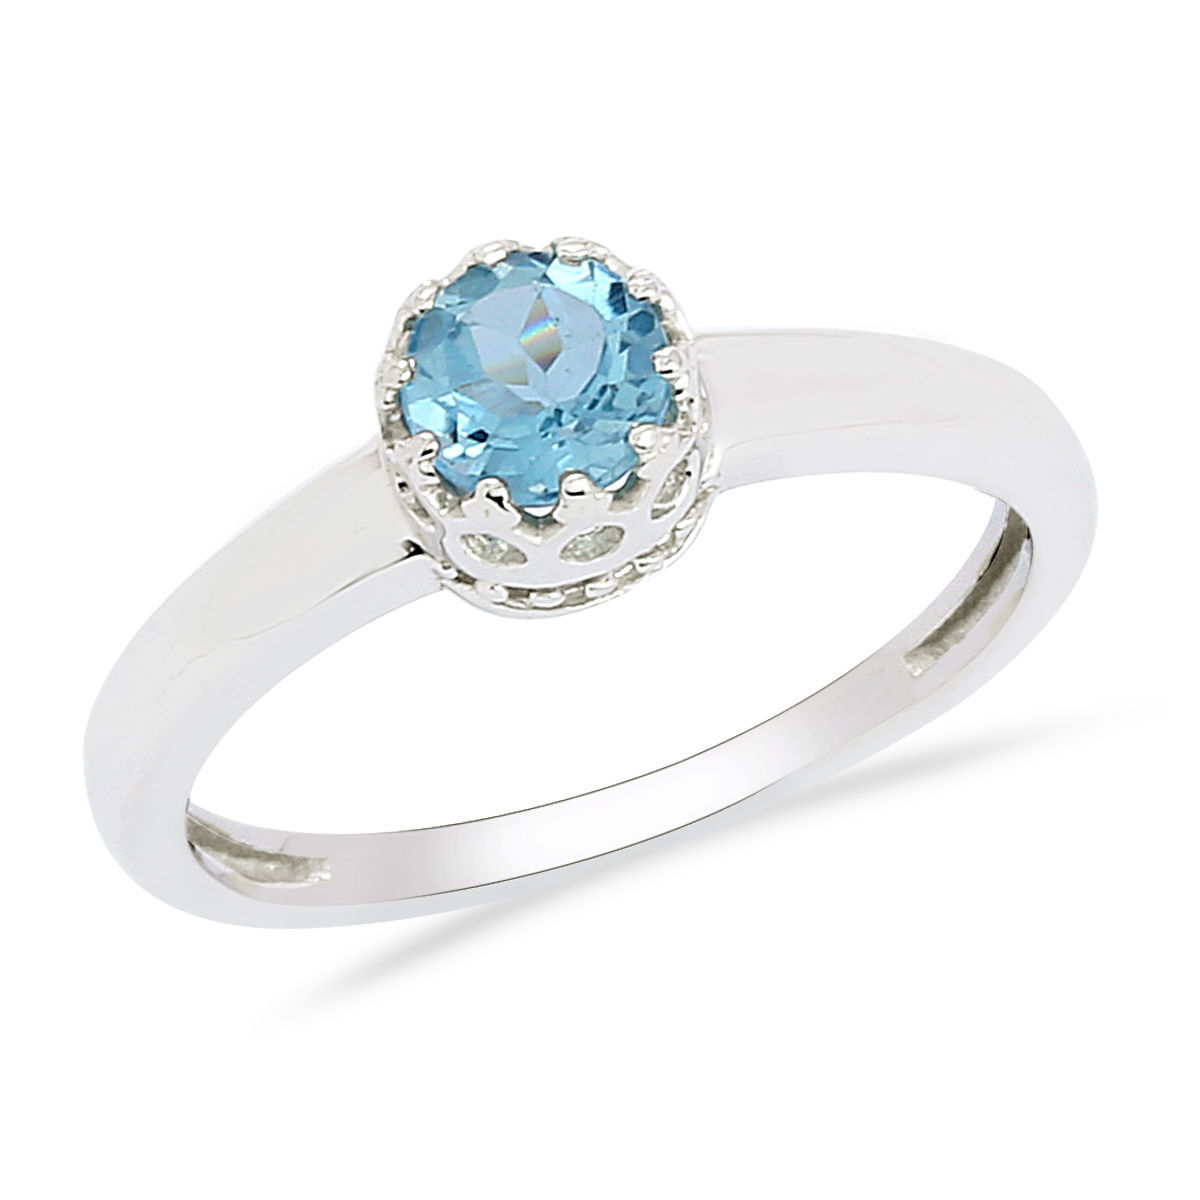 Gorgeous Crown 925 Sterling Silver Blue Topaz Gemstone Jewelry Ring S 7 SHRI0157